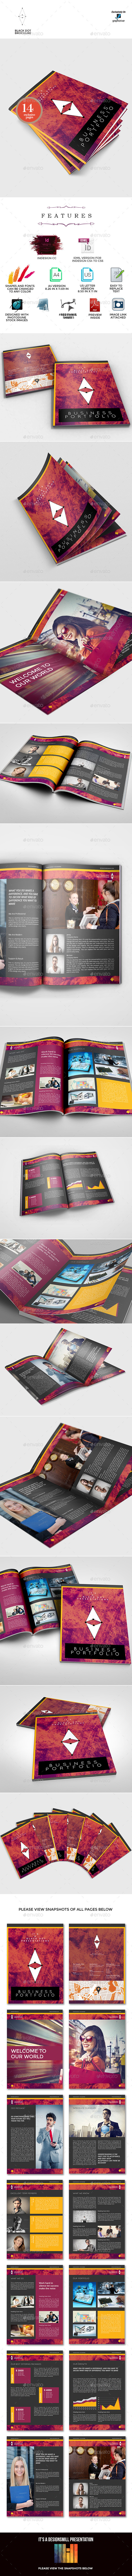 Business Portfolio for Corporate Companies - Portfolio Brochures